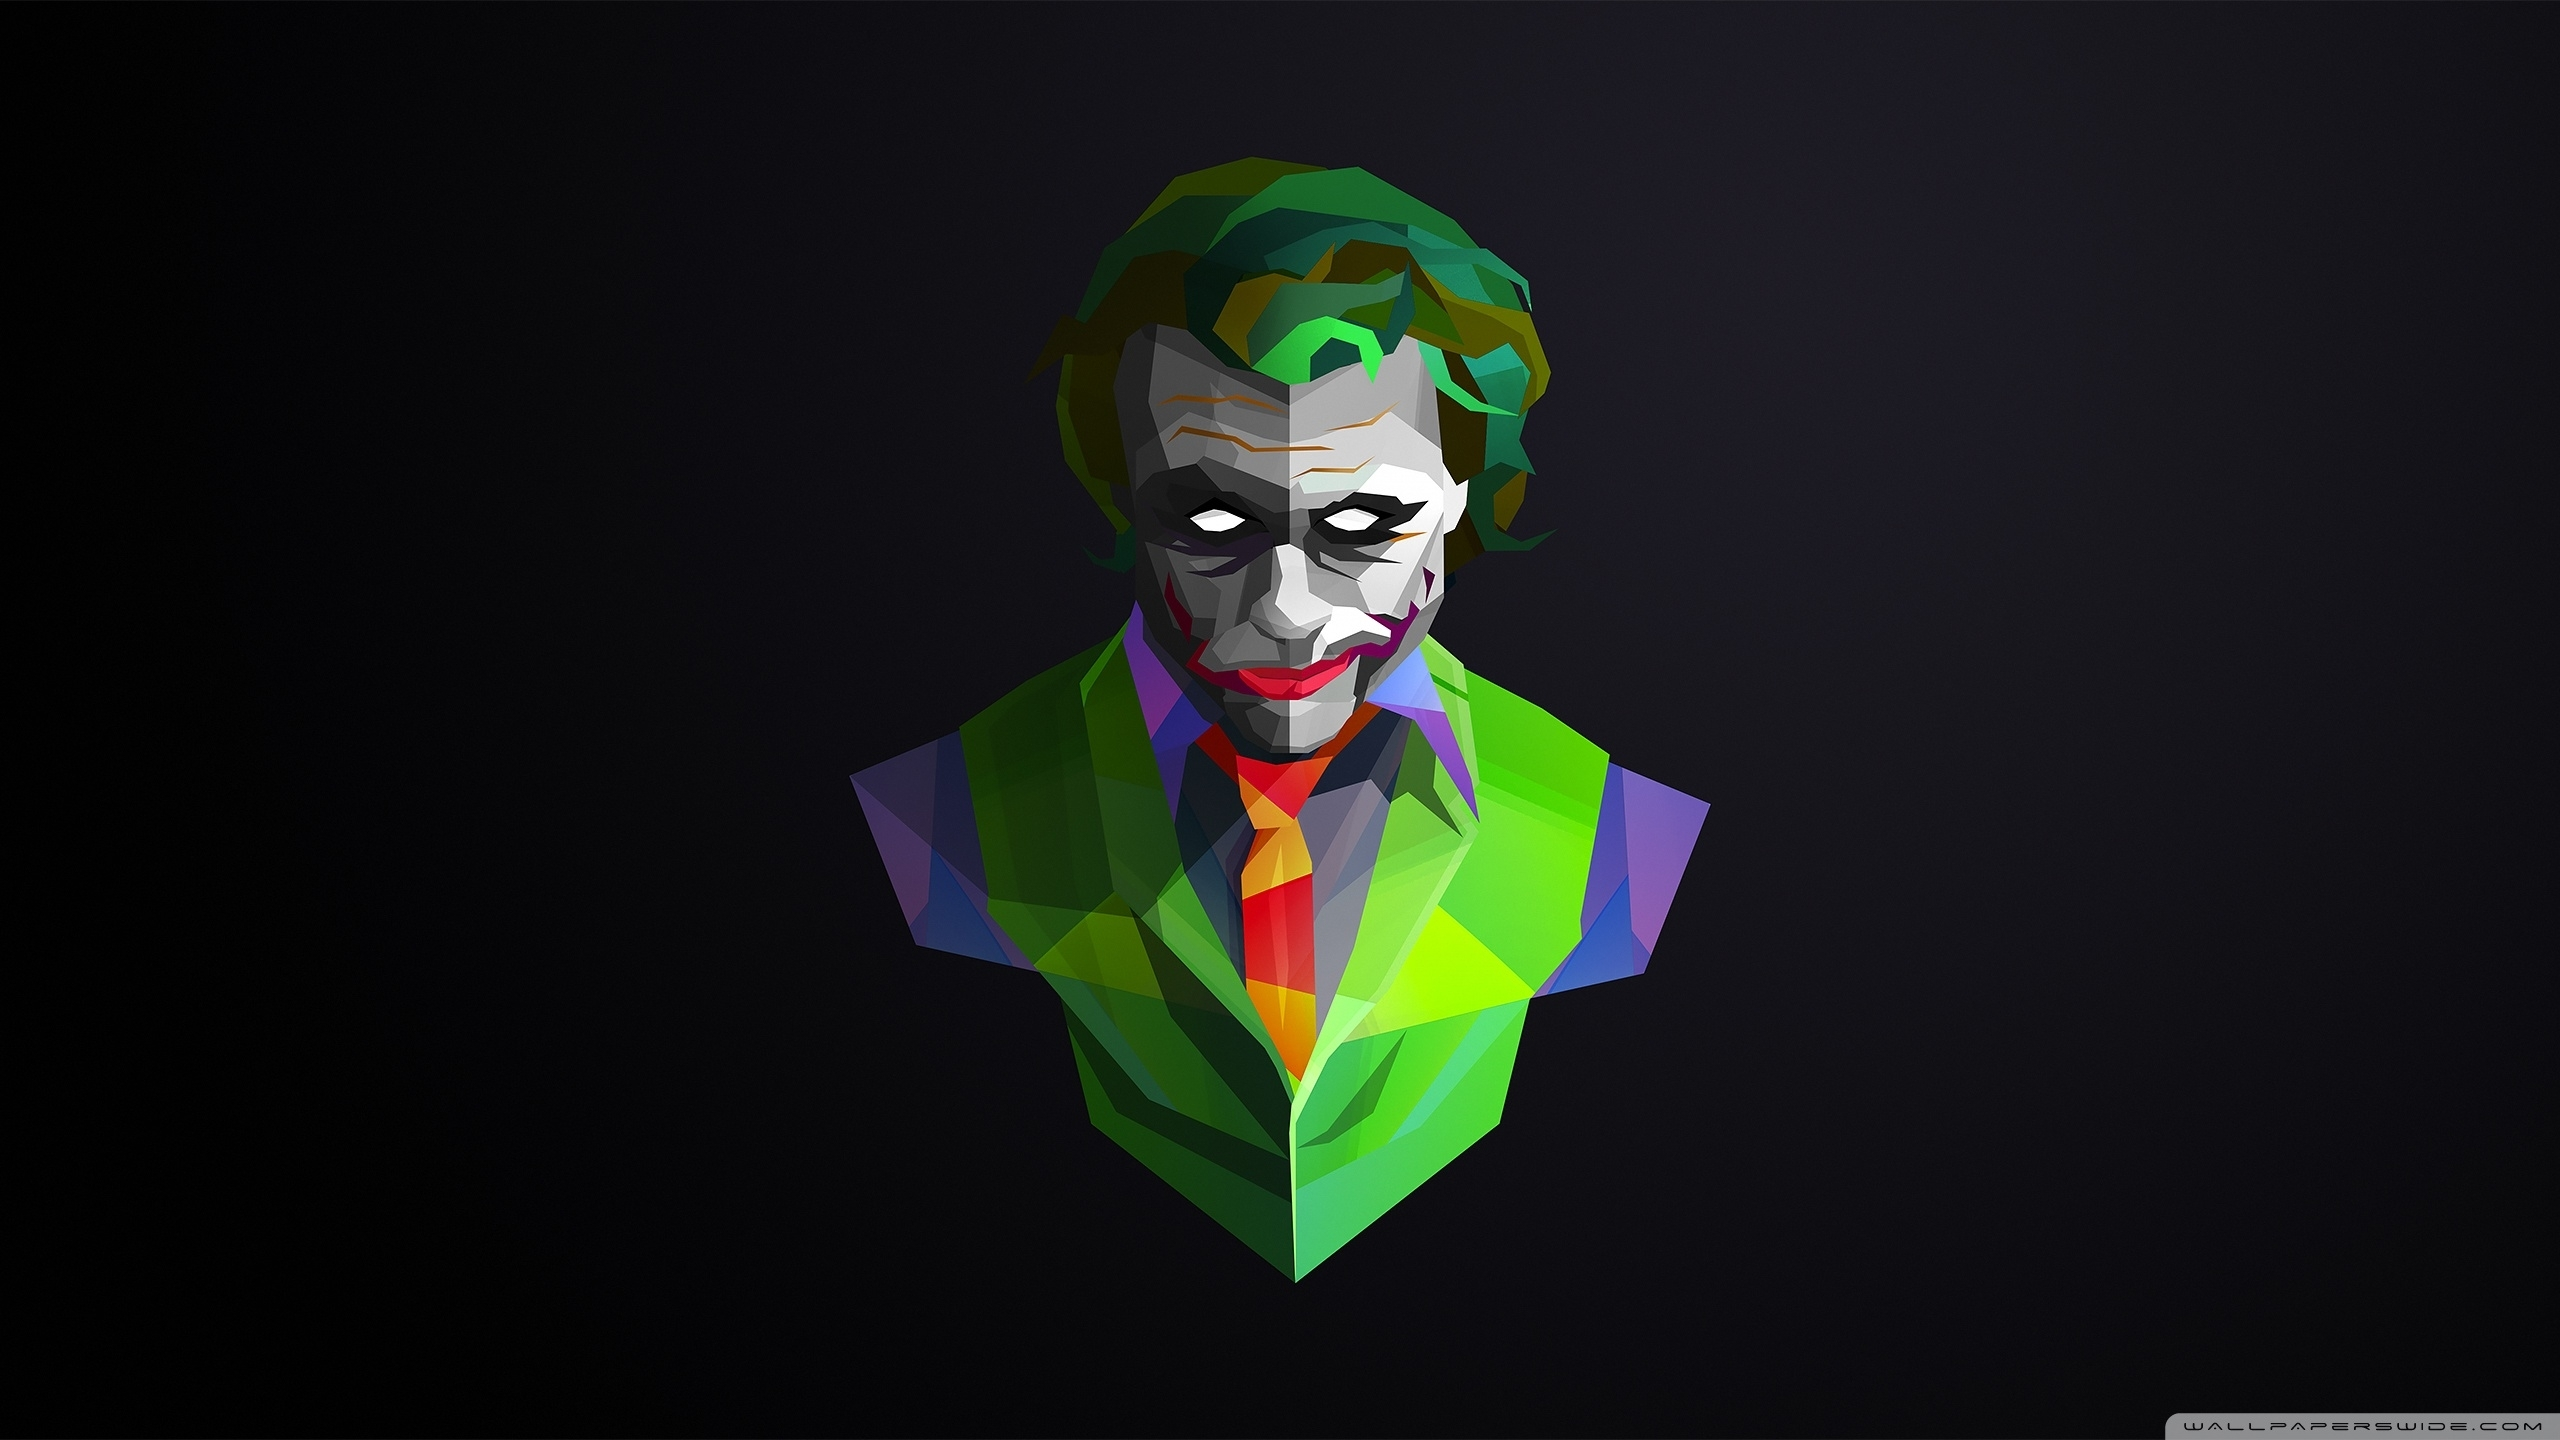 wallpaperswide ❤ joker hd wallpapers for 4k ultra hd tv ☆ wide